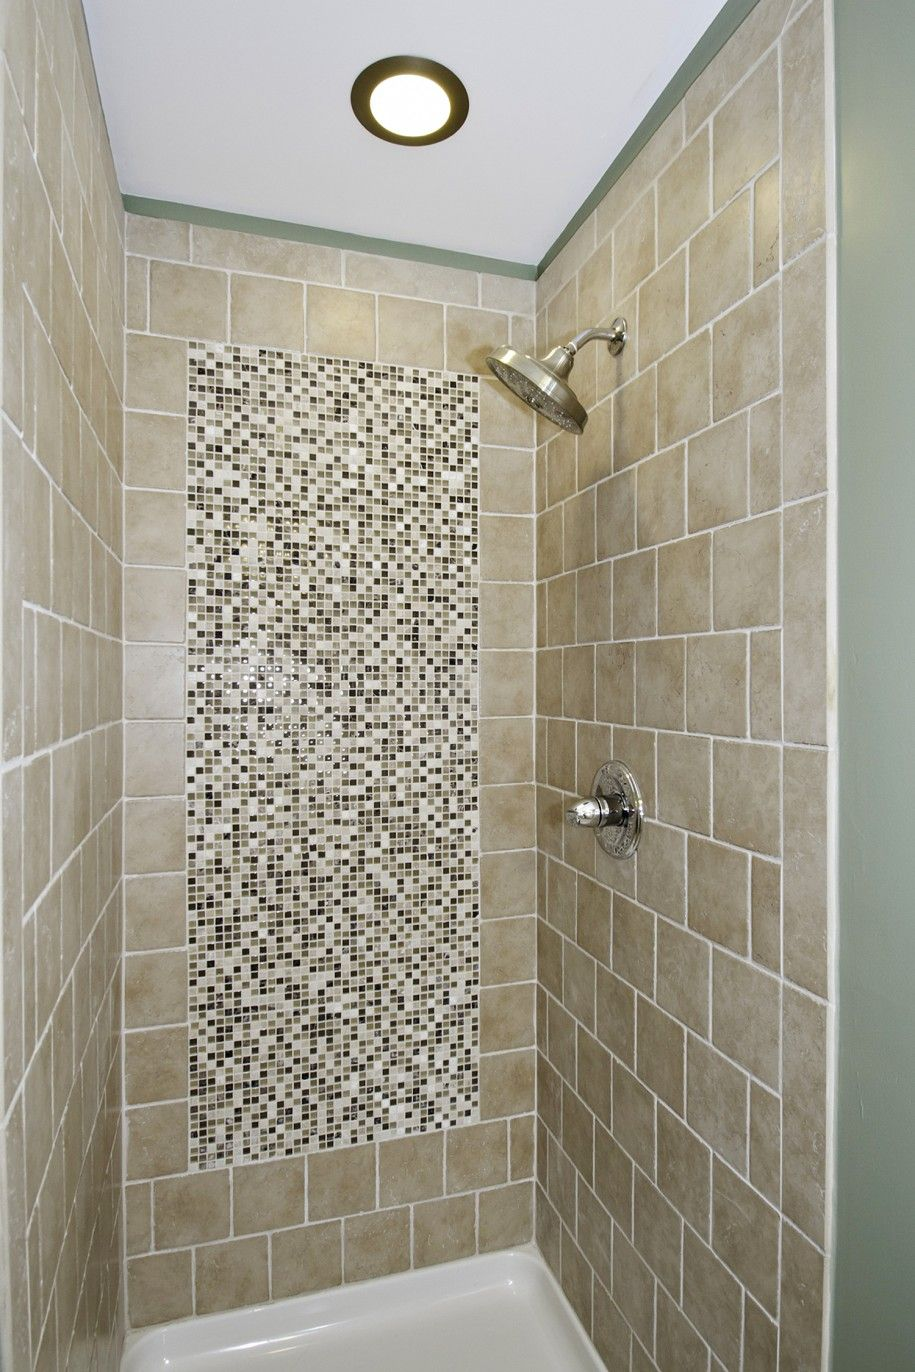 Splendid image of bathroom decoration using stand up shower ideas fantastic small bathroom for Standing shower bathroom ideas